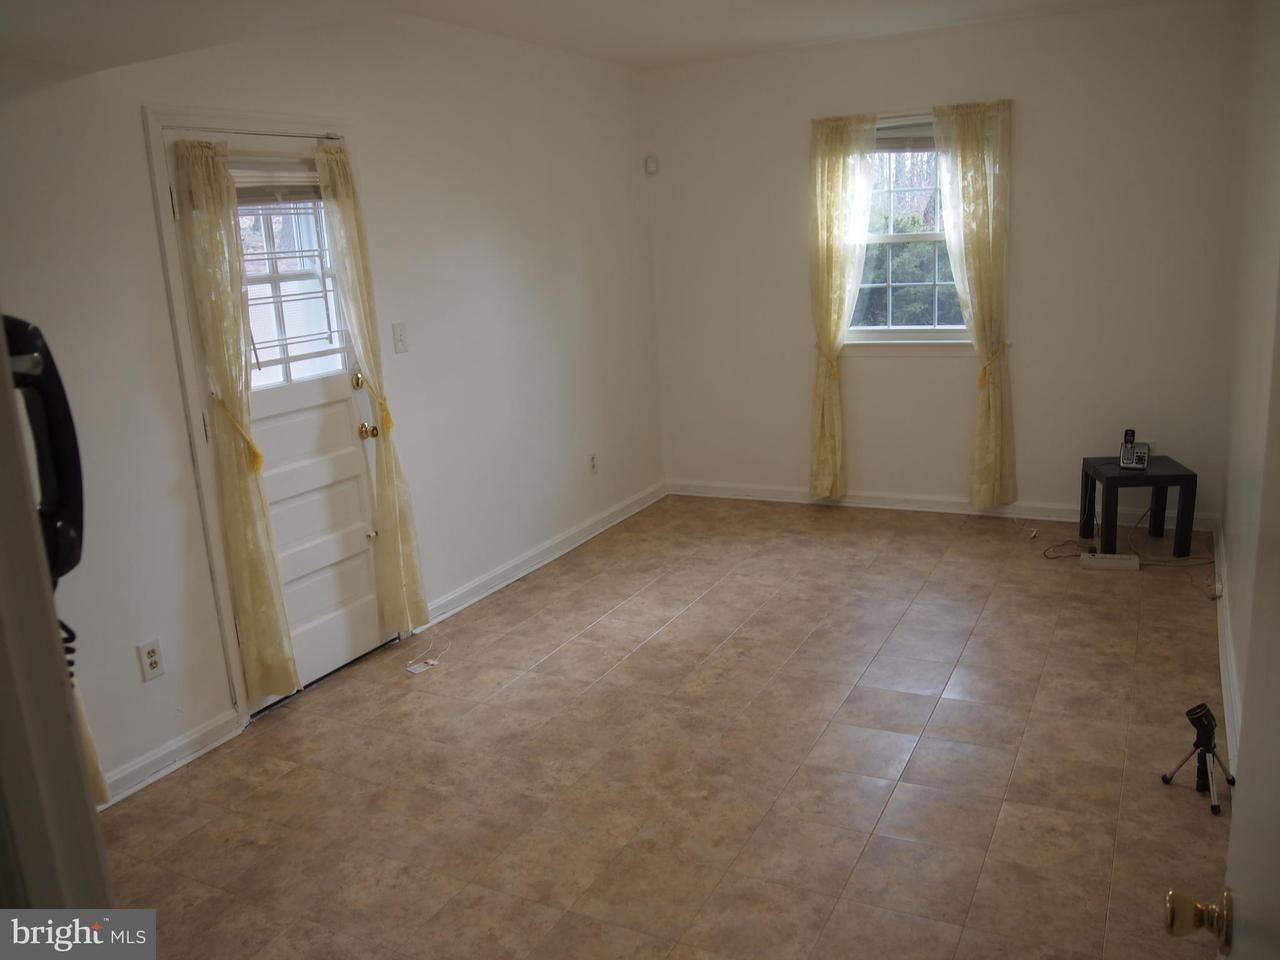 Single Family Home for Sale at 2009 WOODED WAY 2009 WOODED WAY Adelphi, Maryland 20783 United States